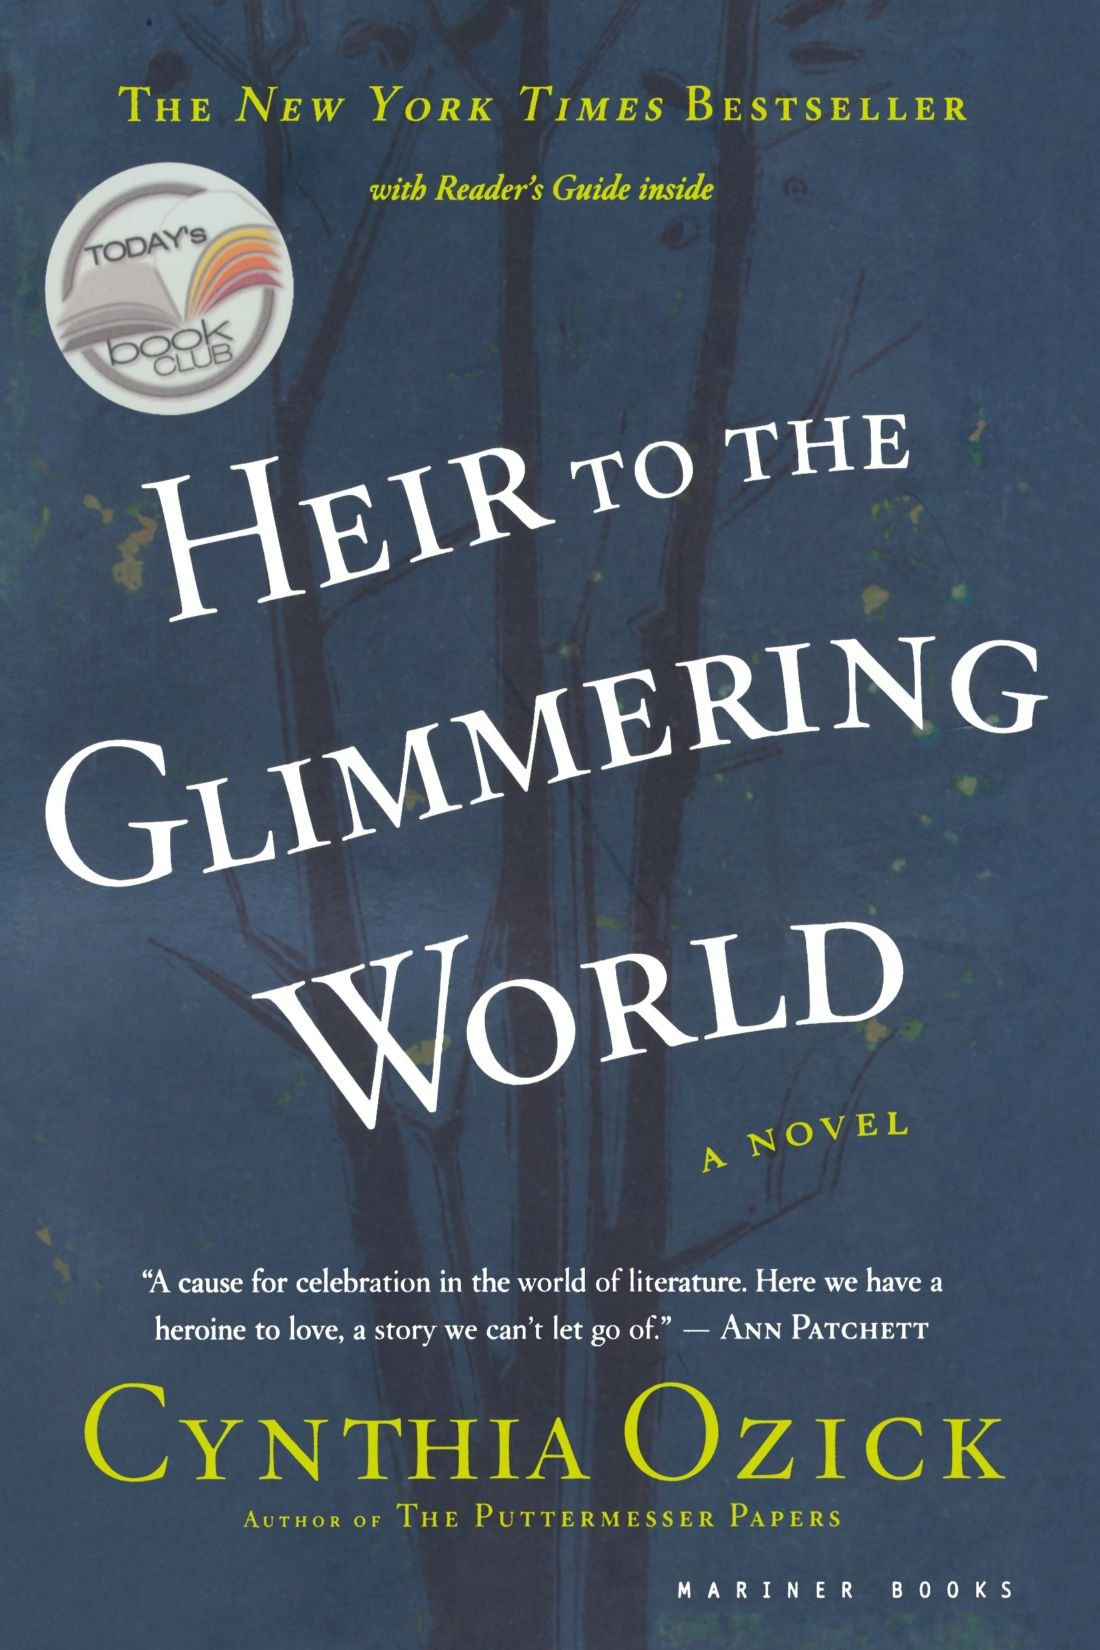 Download Heir To The Glimmering World Pa ebook